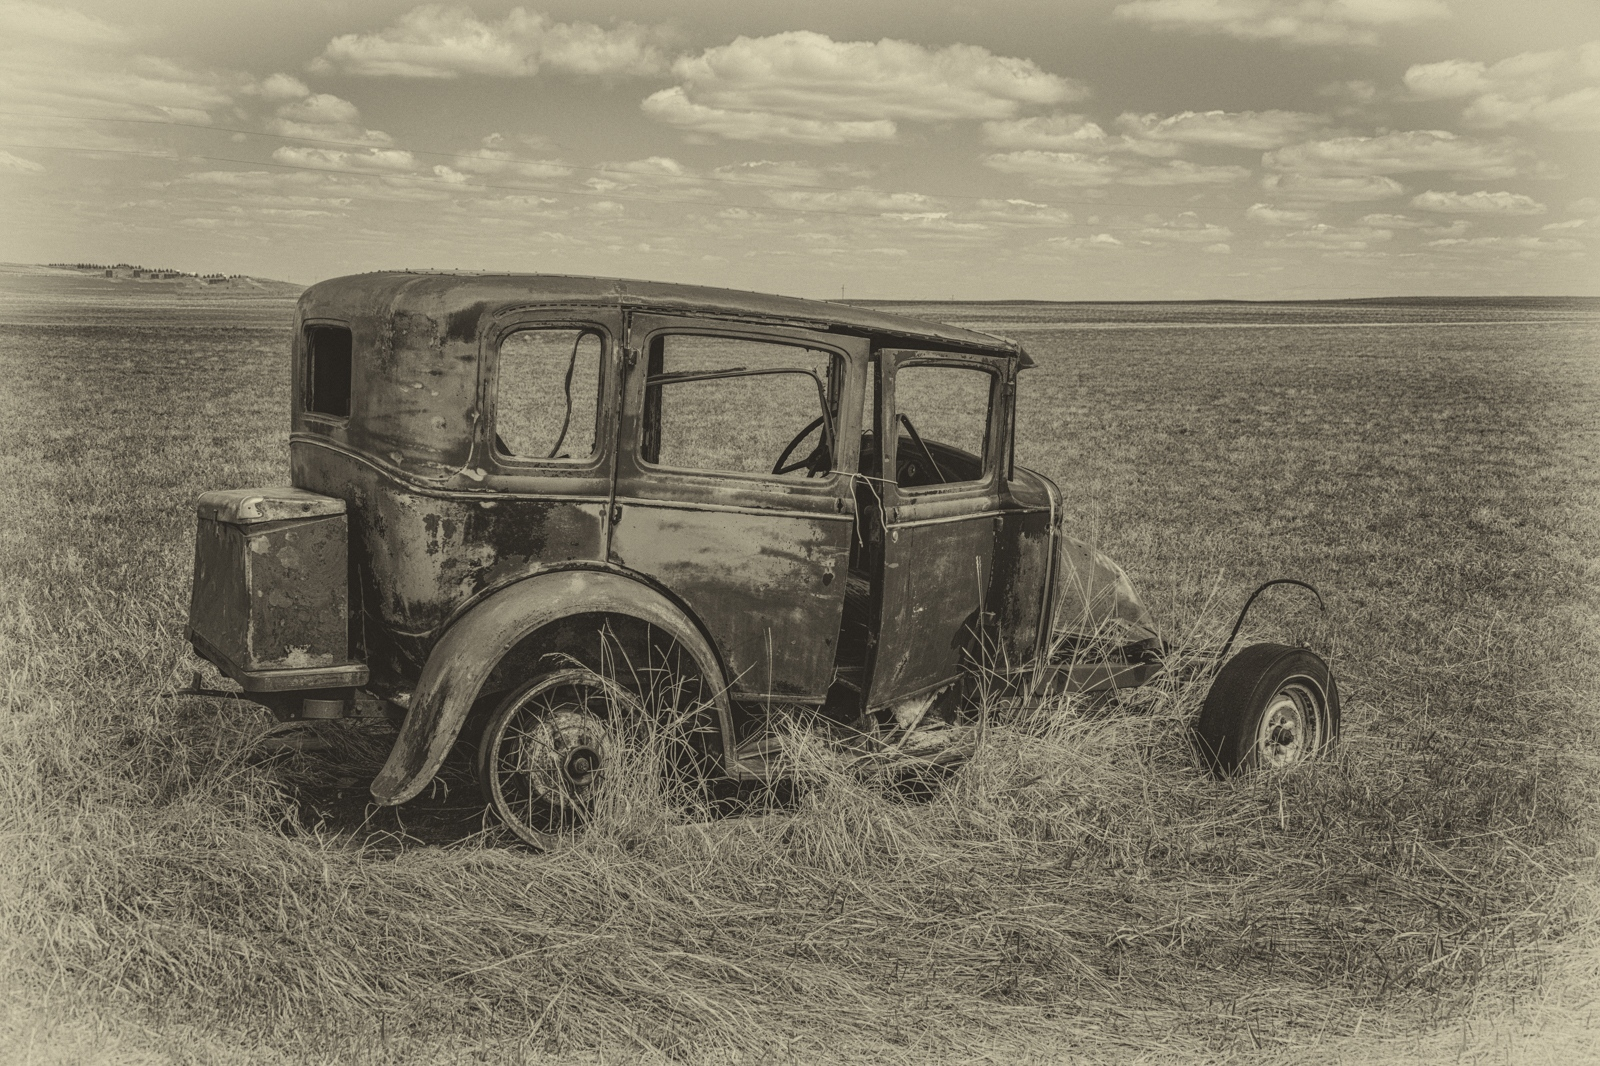 15-Old-Car-in-Badlands